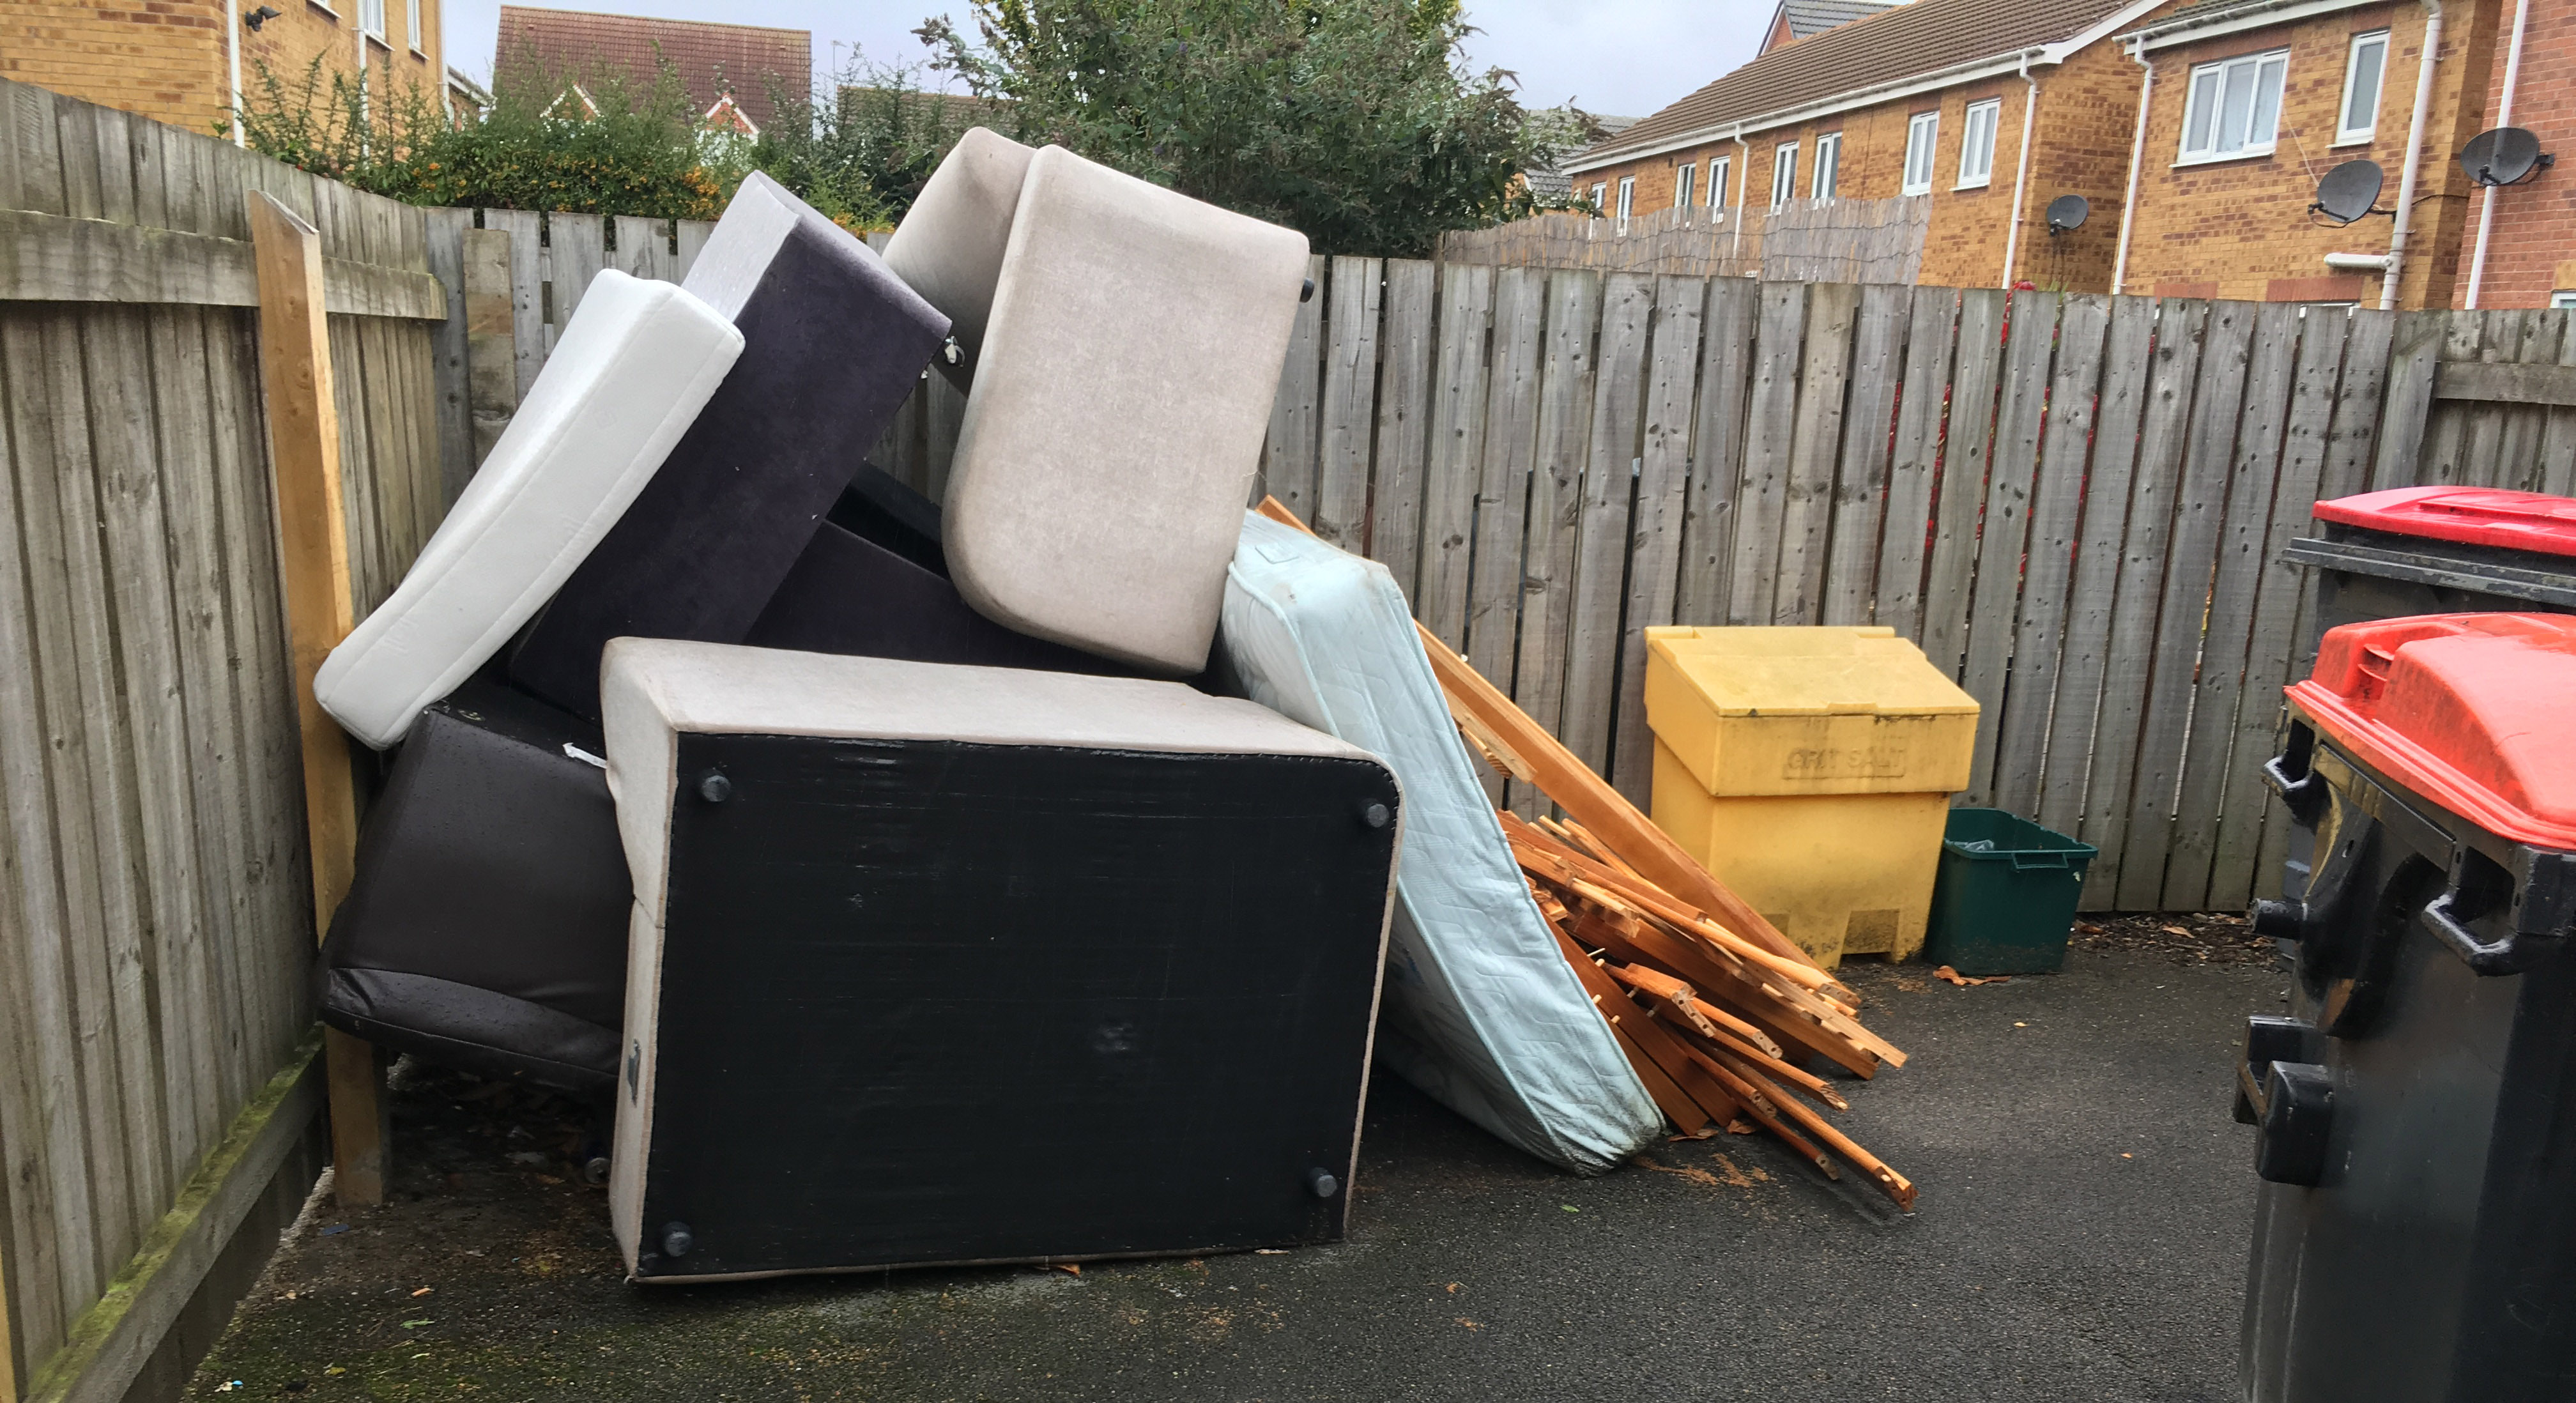 Bulky waste waiting for collection in Leeds